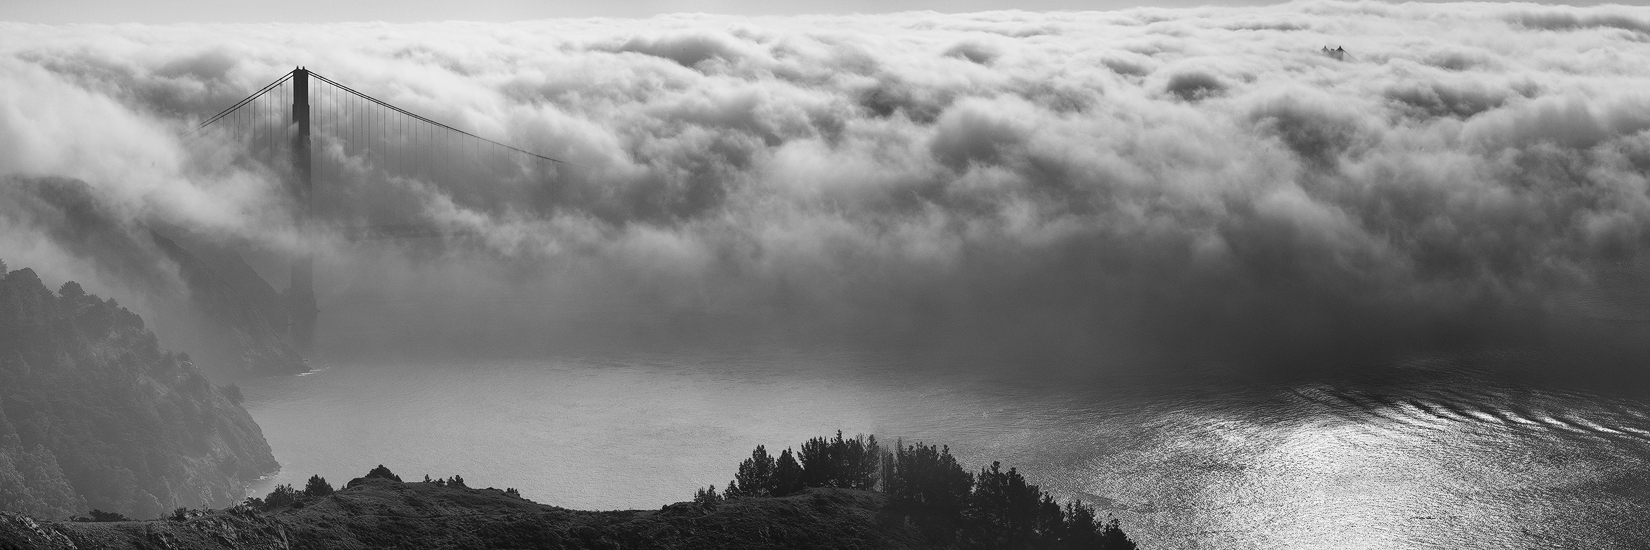 The Magic Bridge, San Francisco, California, Pacific, ocean, fog, dense fog, Marin, mountains, panoramic, black and white, photos, bernard chen, timescapes, photo